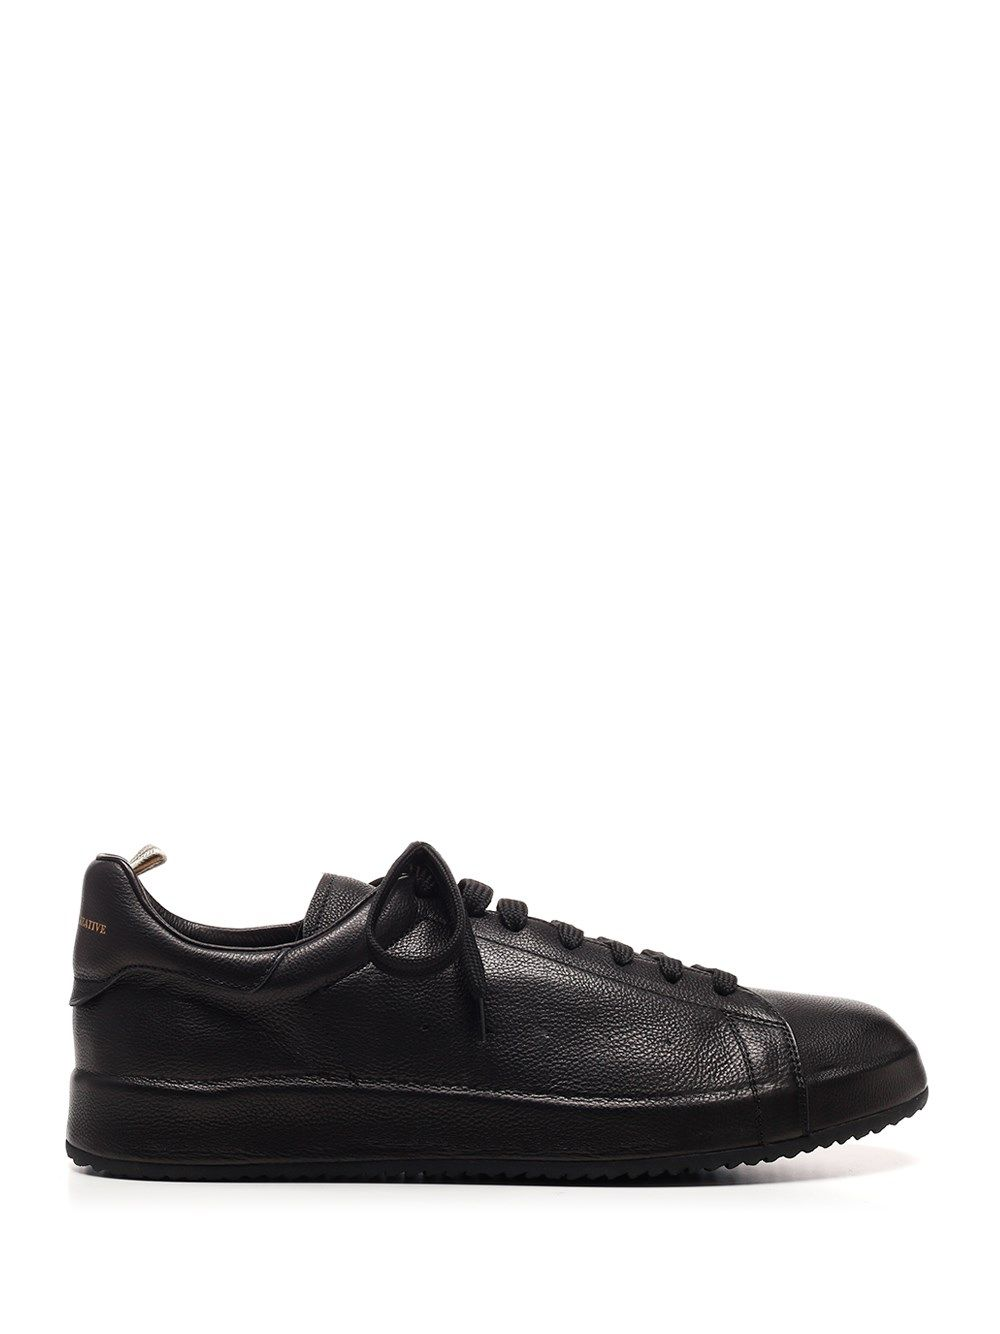 Officine Creative OFFICINE CREATIVE MEN'S BLACK OTHER MATERIALS SNEAKERS